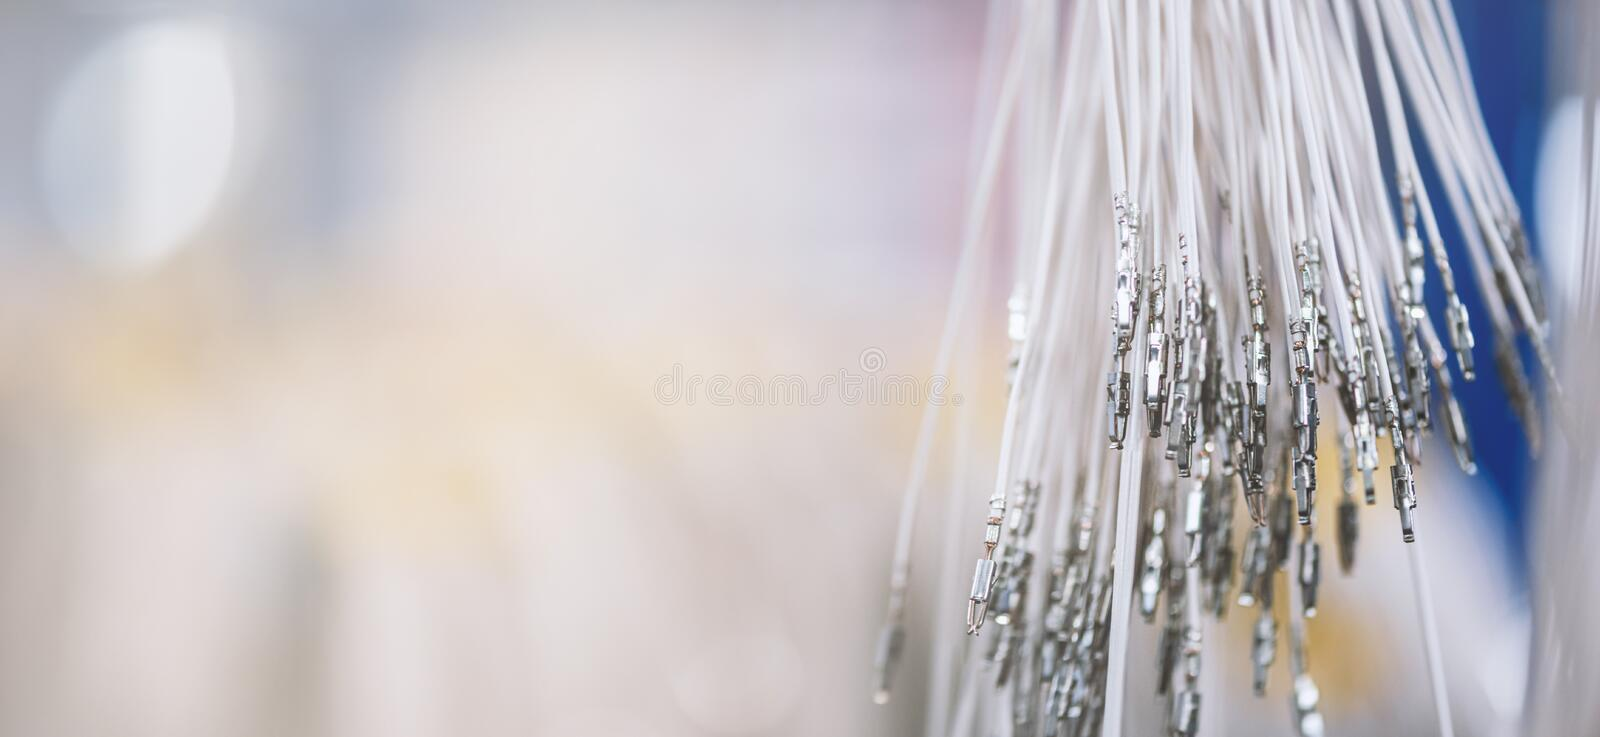 Bundle of crimped cables with blade connectors. Electrical contacts. Terminated wire ready to creation connection. Industrial background with copy space for royalty free stock photography